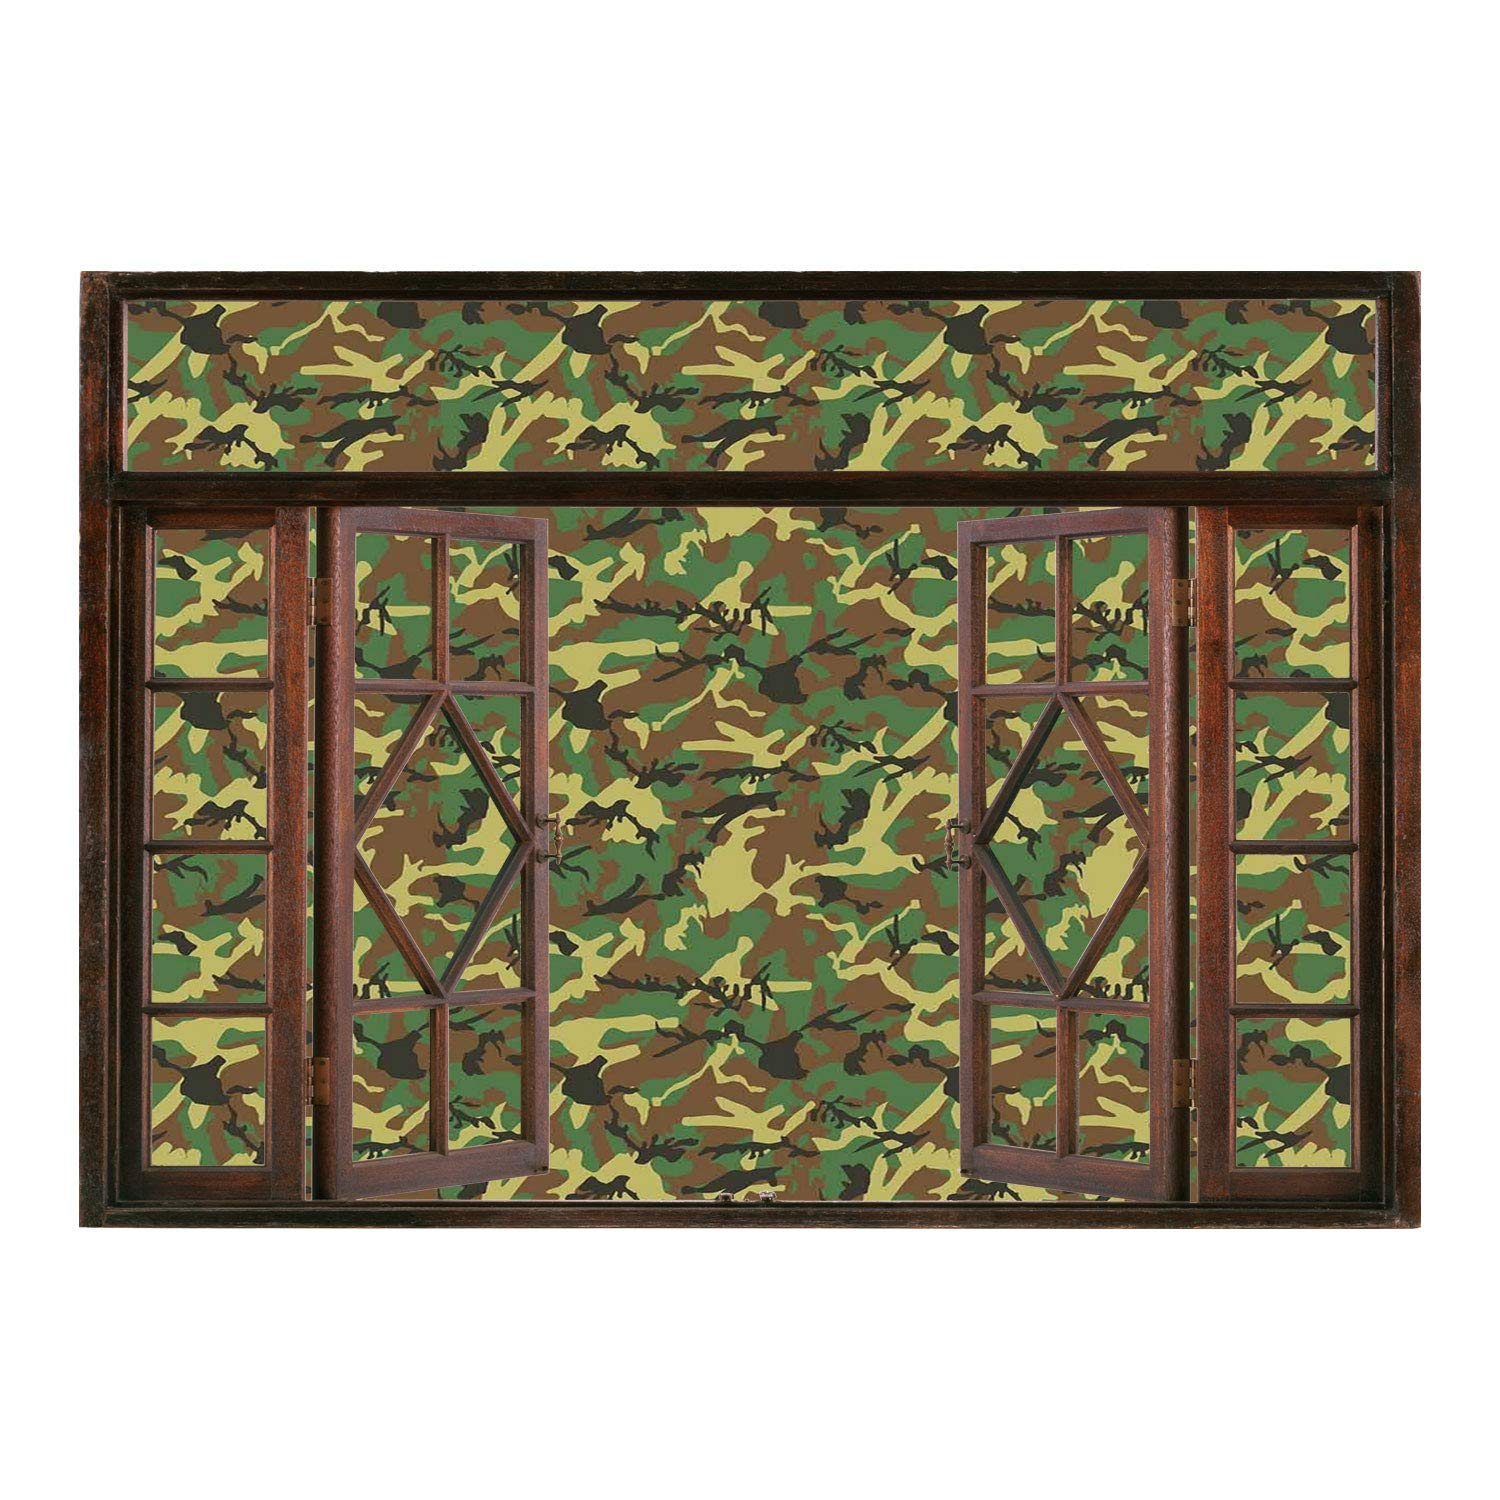 SCOCICI Creative Window View Home Decor/Wall Décor Camo,Woodland Camouflage  Pattern Abstract Army Force Hiding In Jungle,Dark Green Light Green  Brown/Wall ...